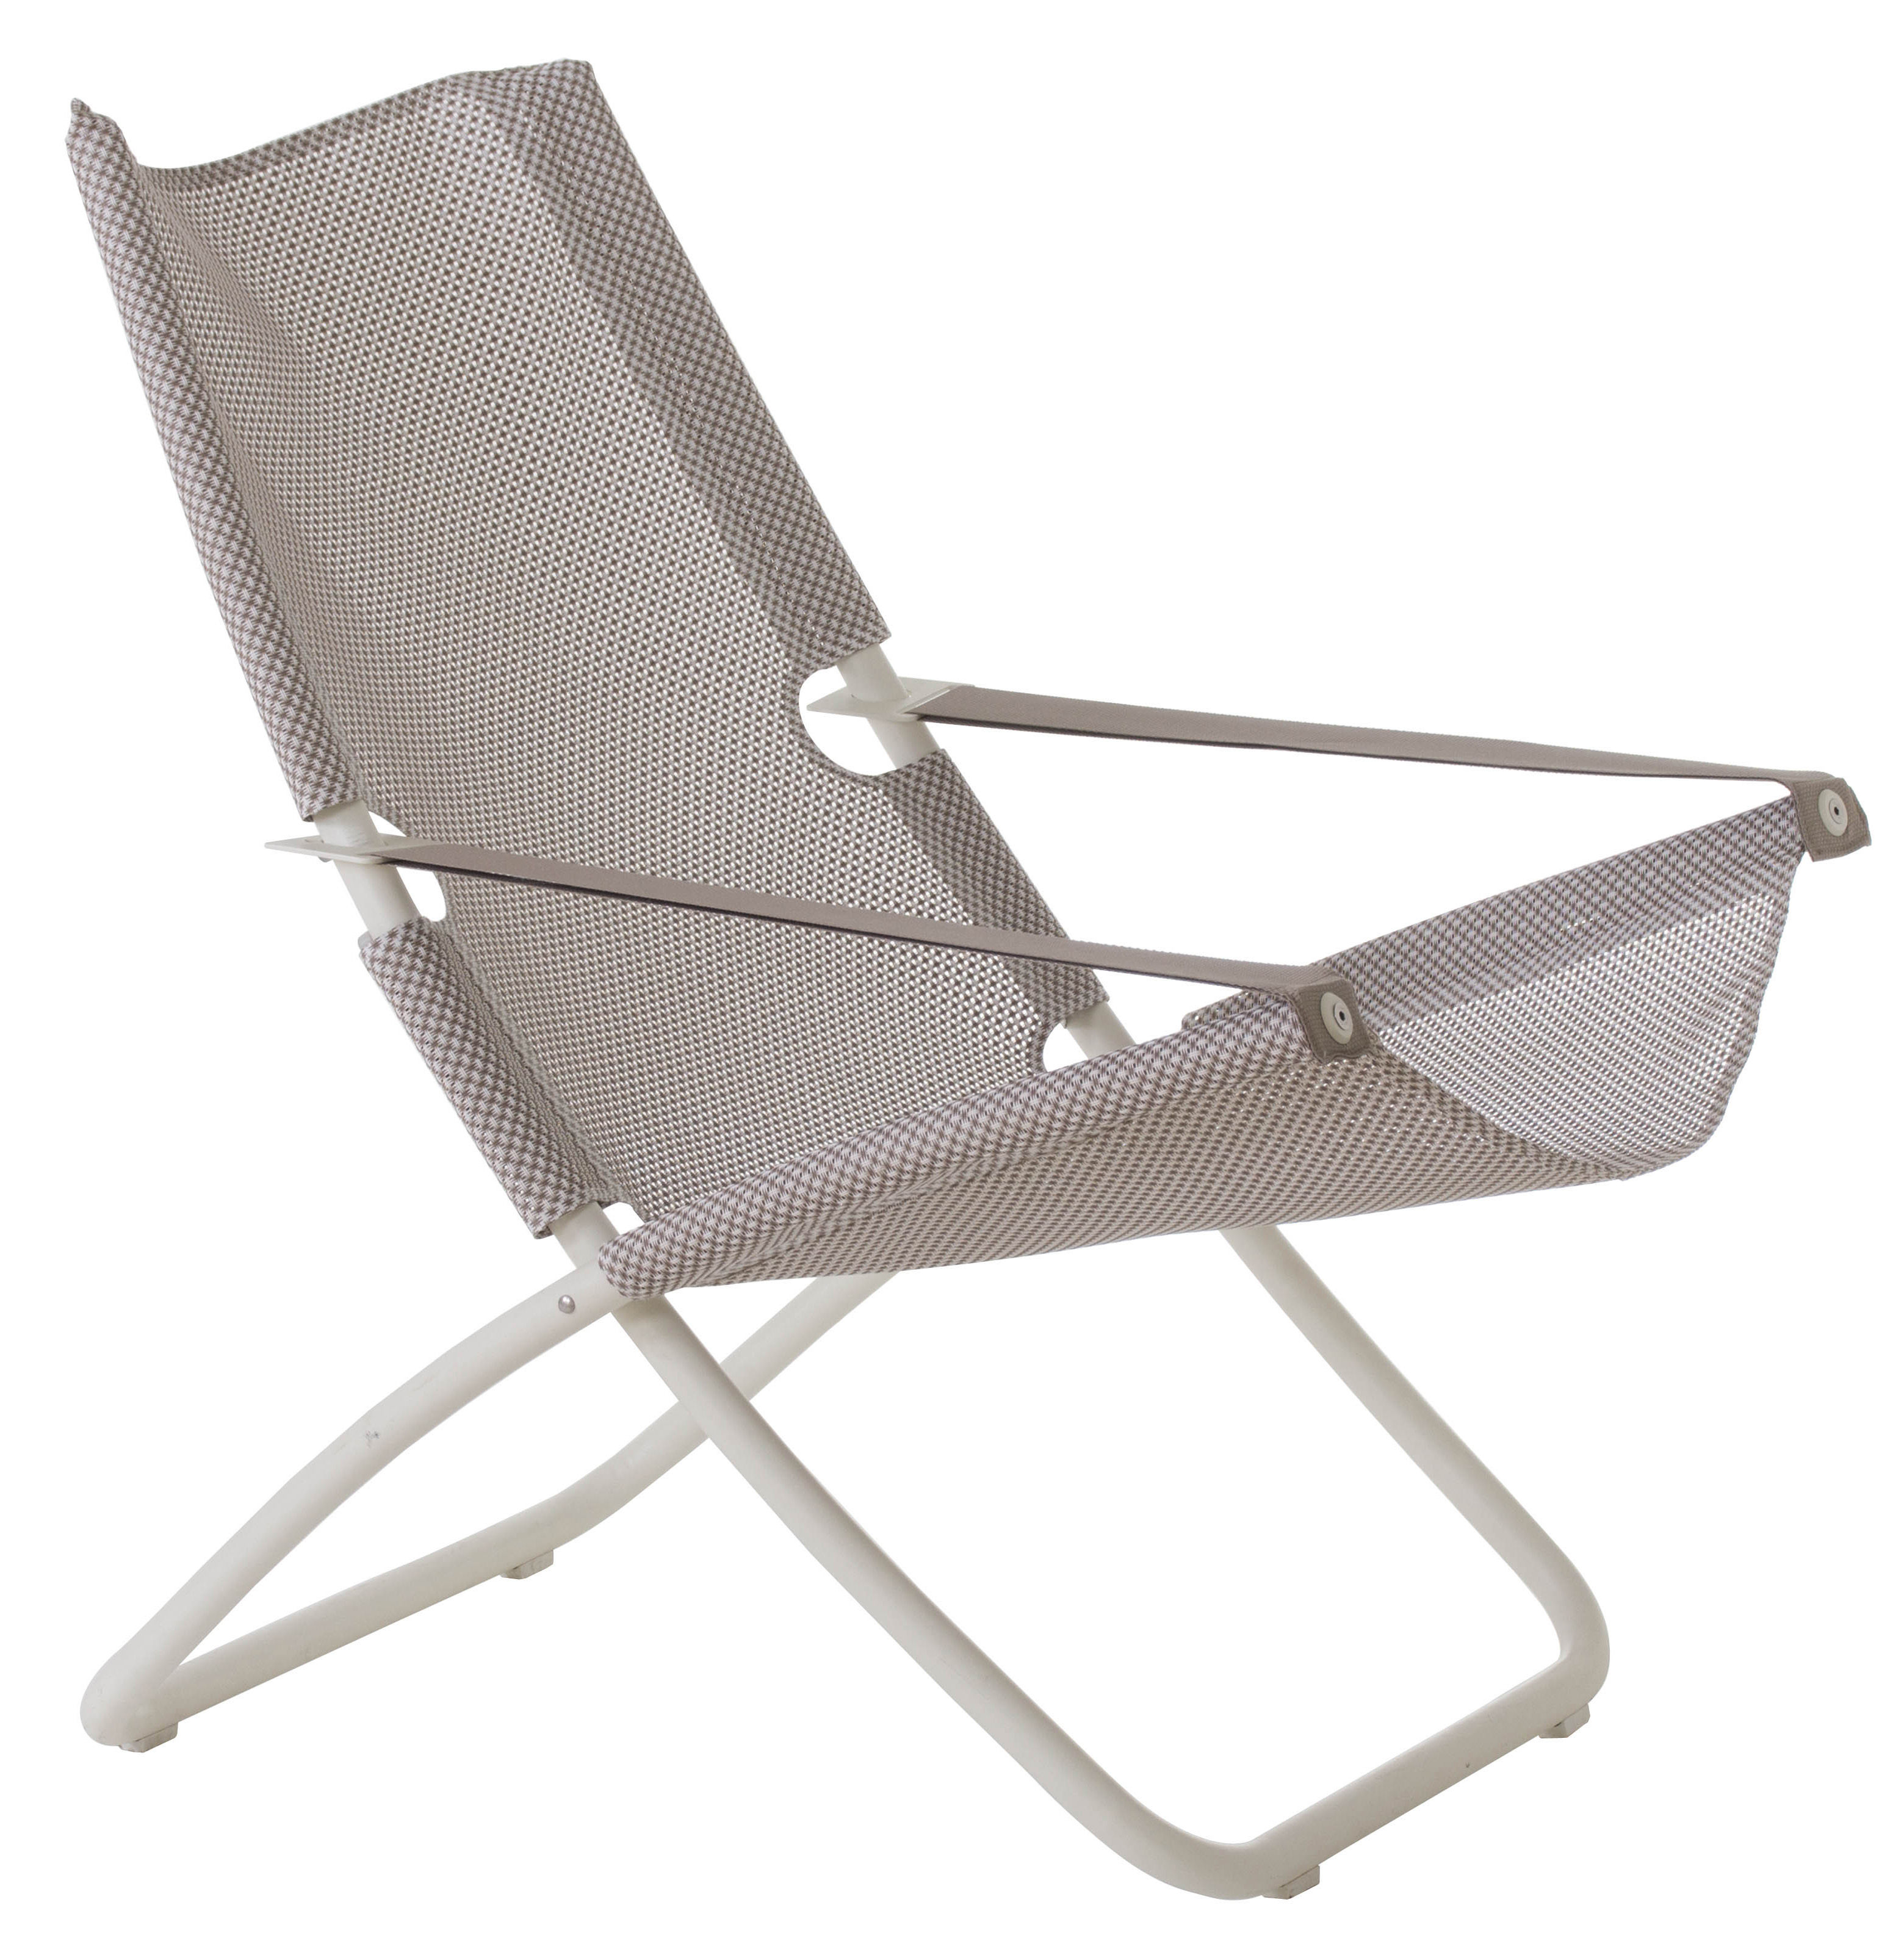 Outdoor - Armchairs & Rocking Chairs - Snooze Reclining chair by Emu - White - Fabric, Steel